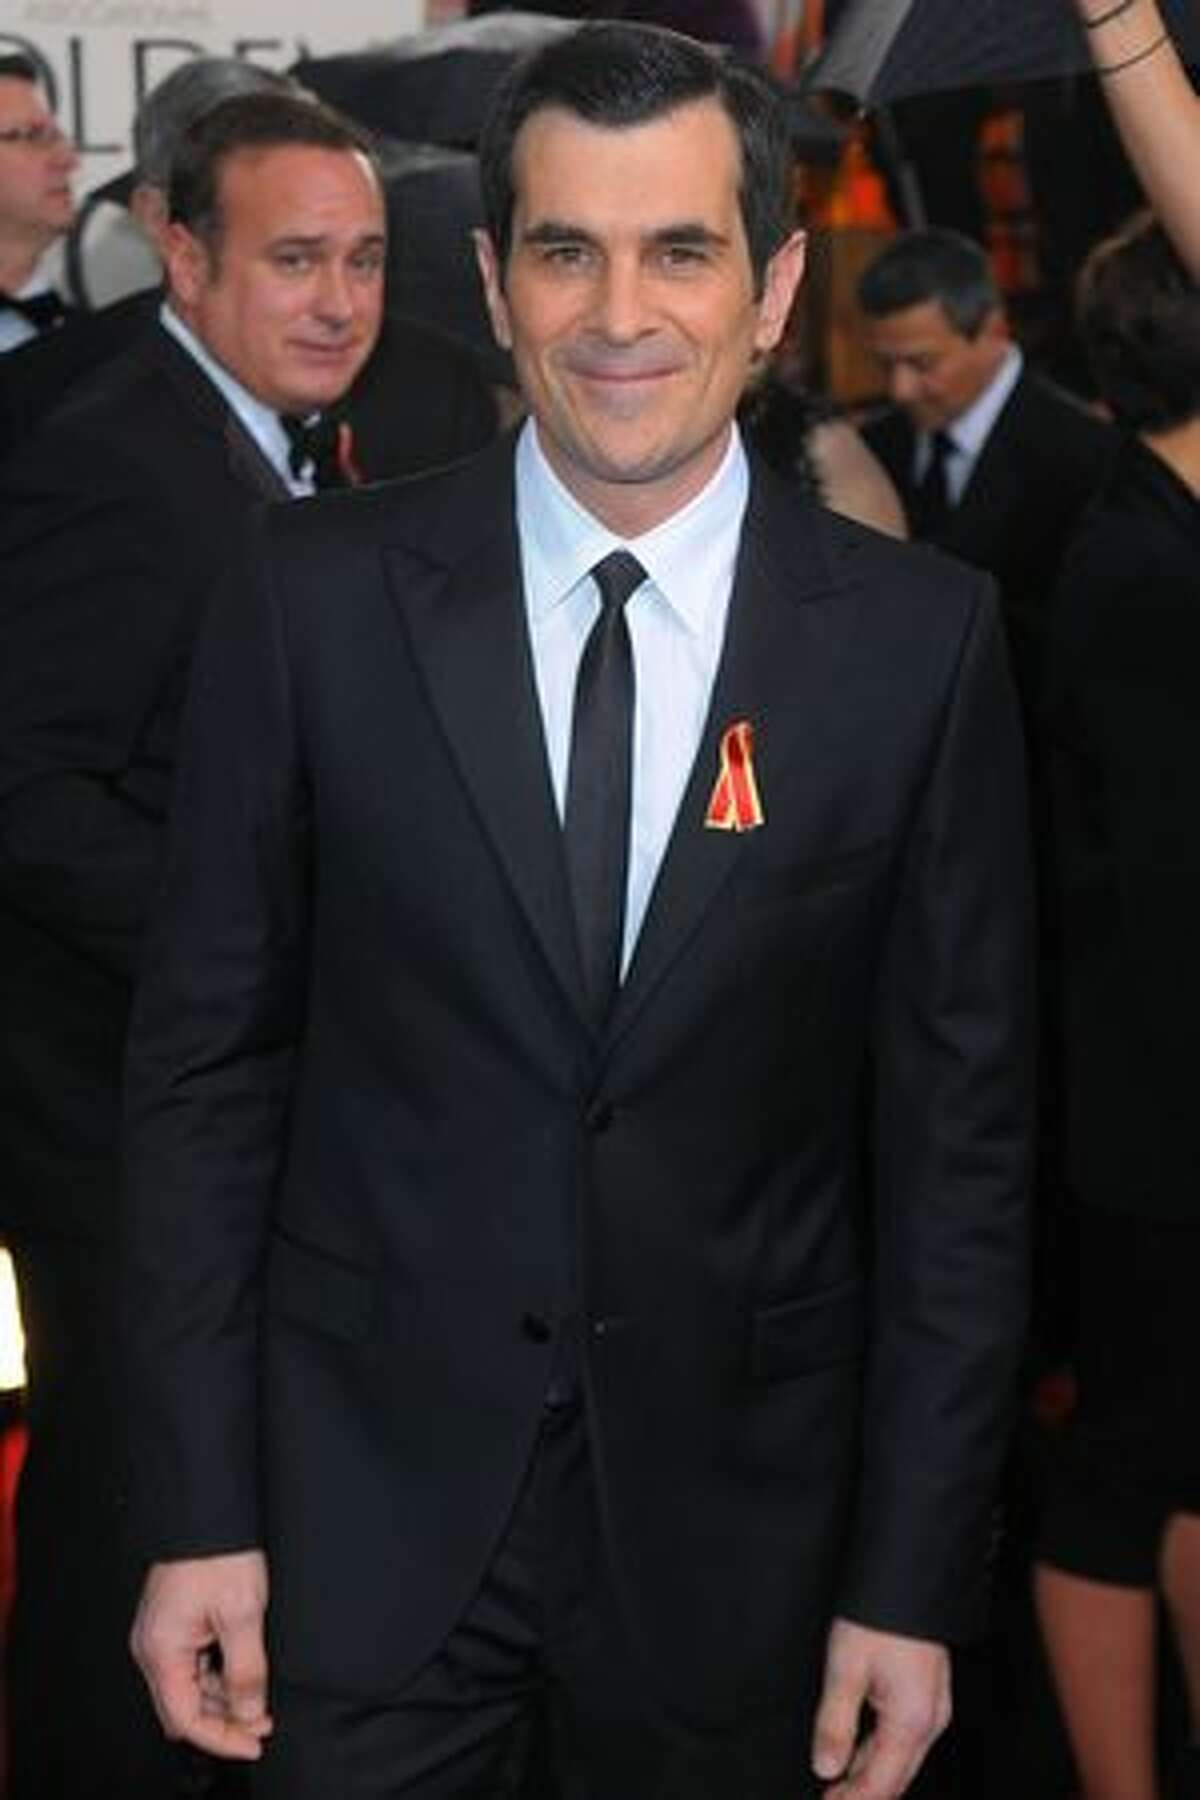 Actor Ty Burrell arrives at the 67th Annual Golden Globe Awards held at The Beverly Hilton Hotel in Beverly Hills, California.